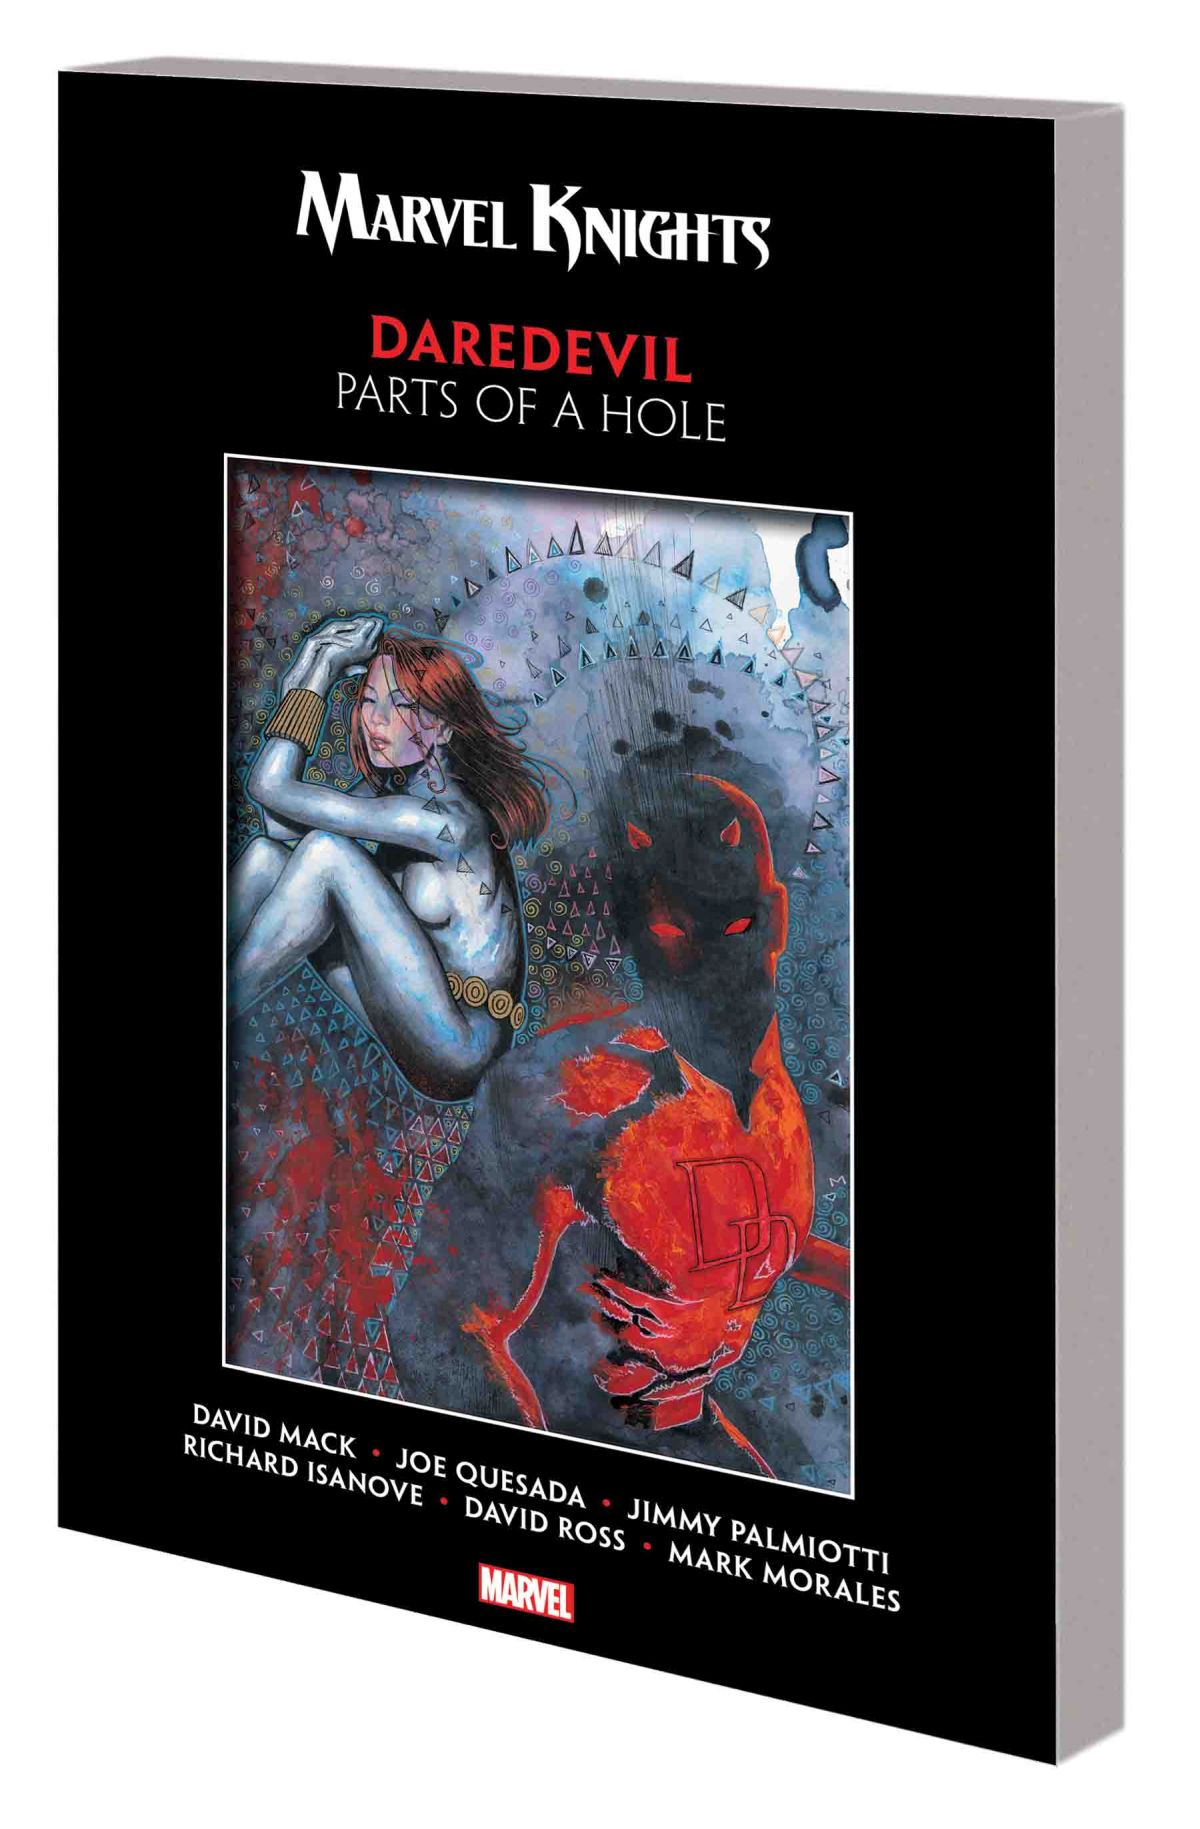 MARVEL KNIGHTS DAREDEVIL BY MACK & QUESADA: PARTS OF A HOLE TPB